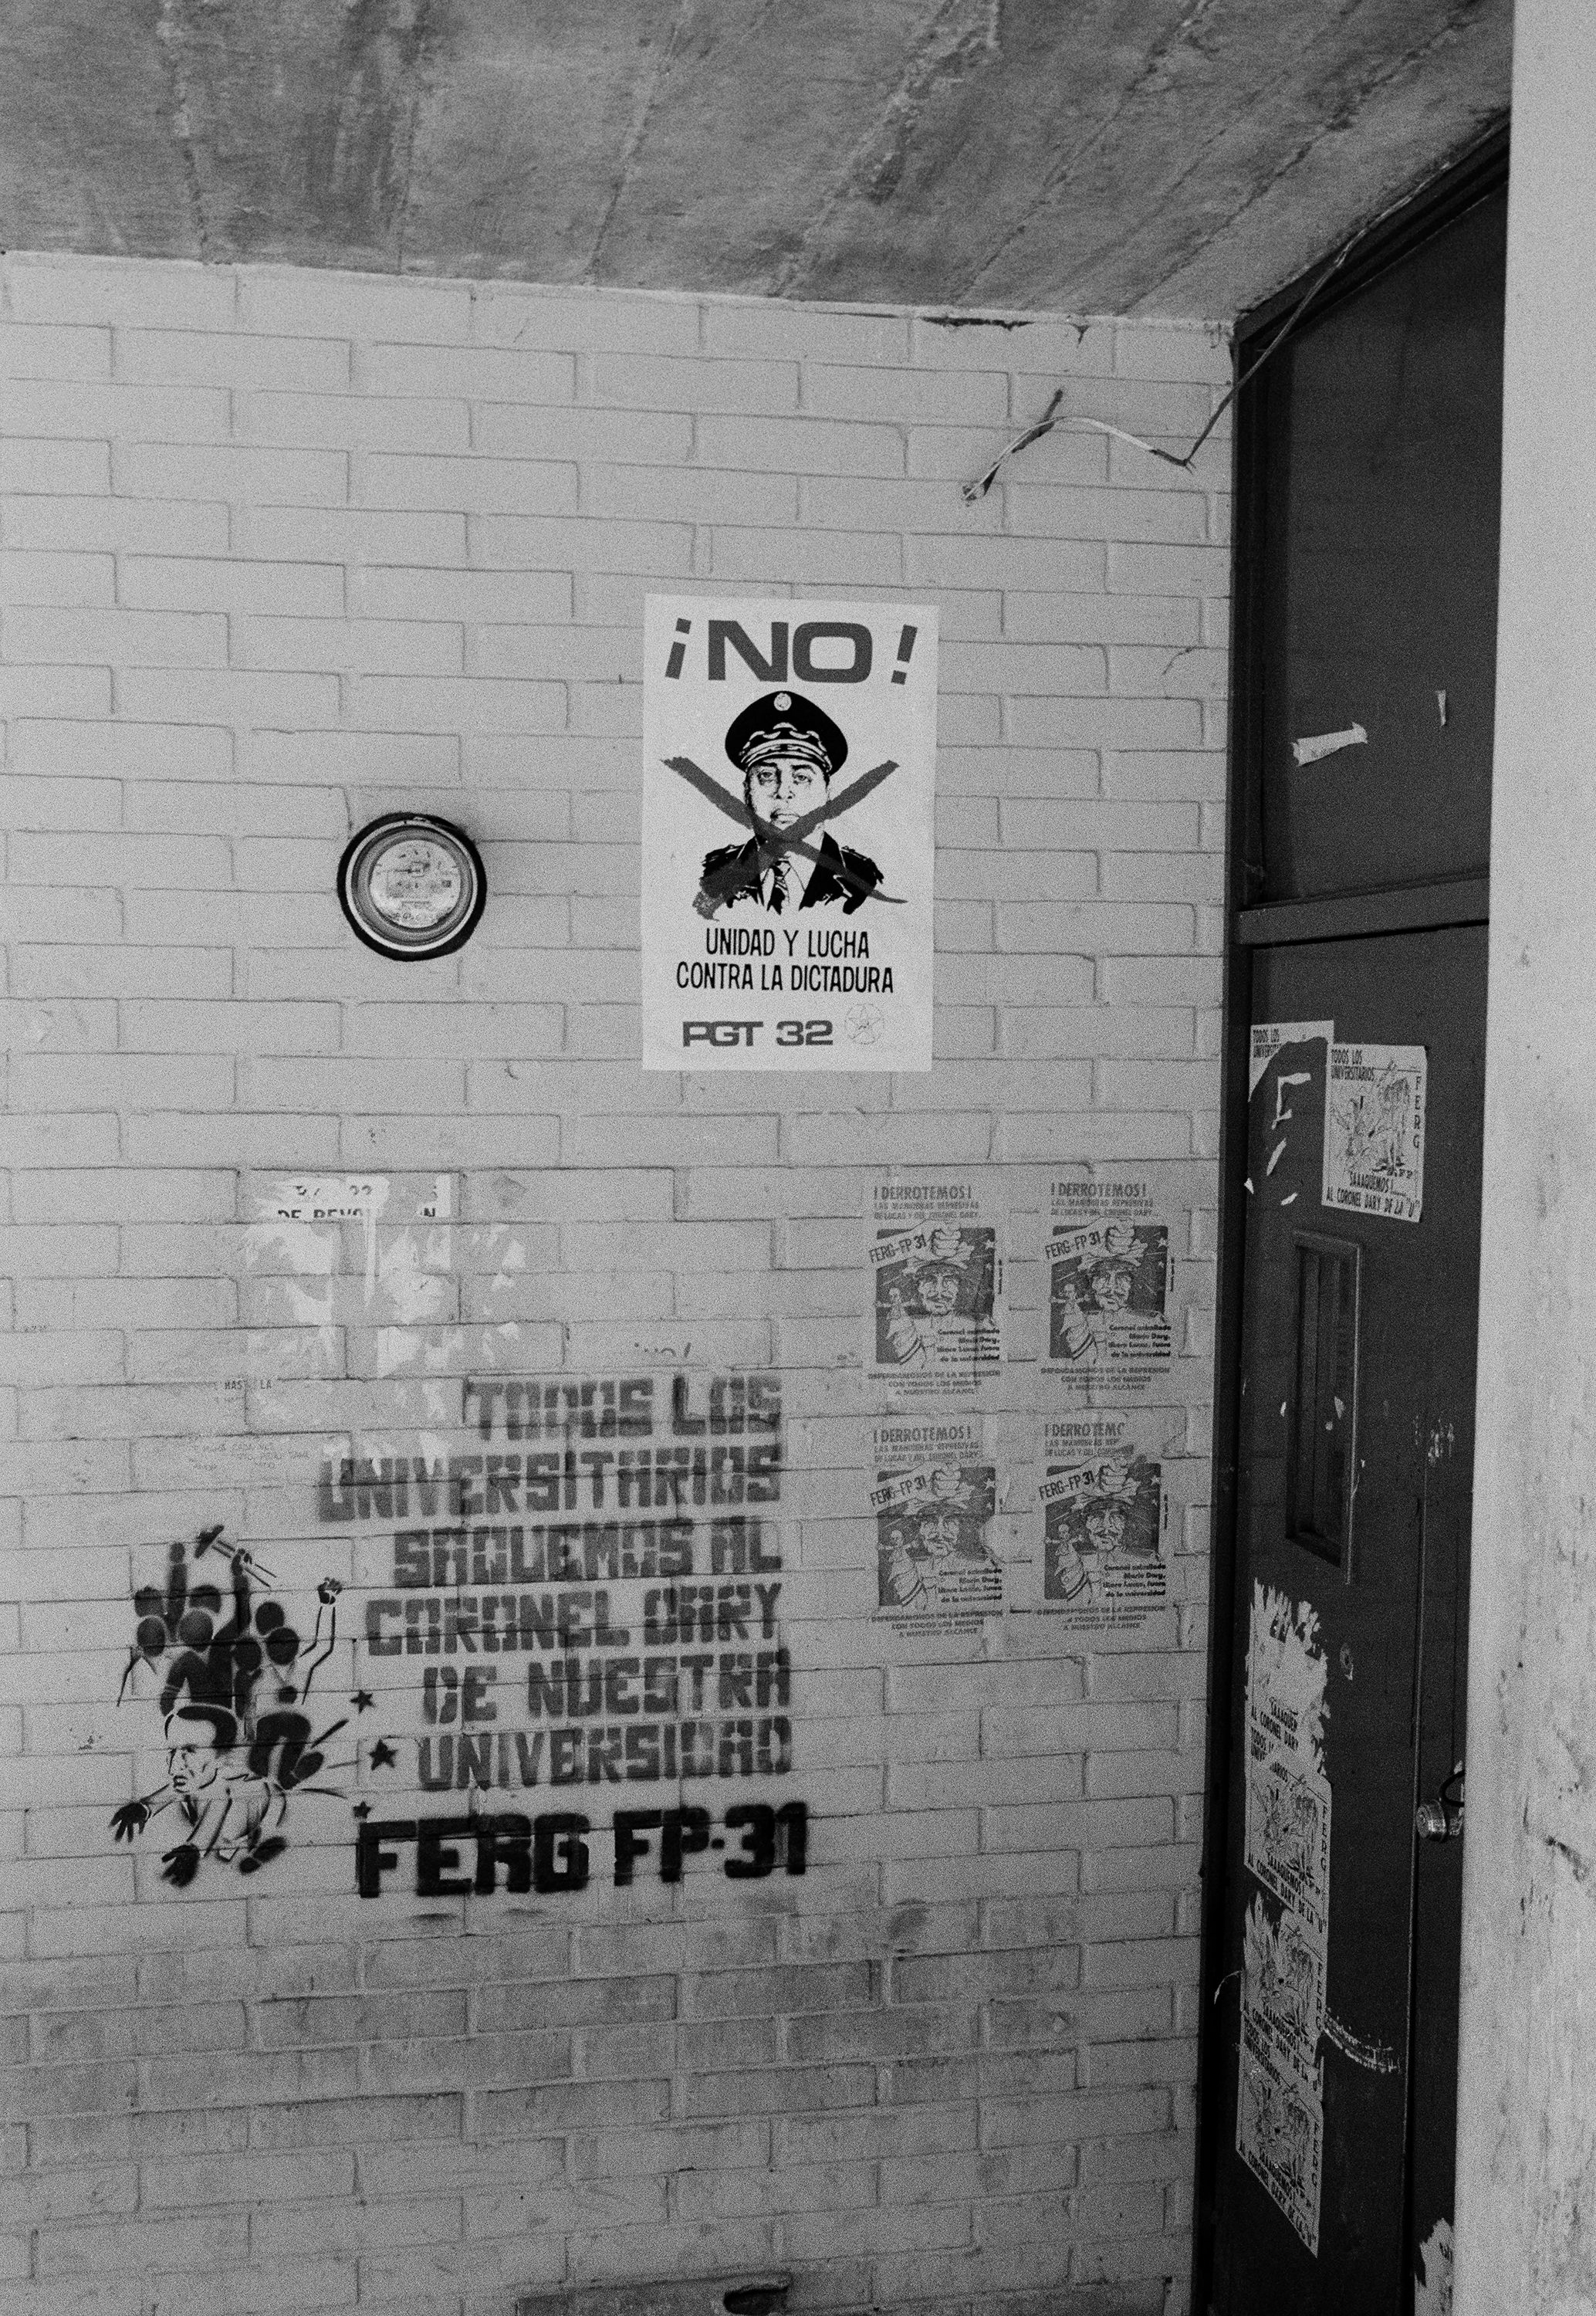 Graffiti in support of leftist insurgent groups and anti-government posters collect on a wall in the University of San Carlos campus in Guatemala City, Guatemala, March 1, 1982. The university served as an active space of resistance throughout the domestic armed conflict, challenging the militarization and violence of the state and its U.S.-sponsored imperialistic policies.